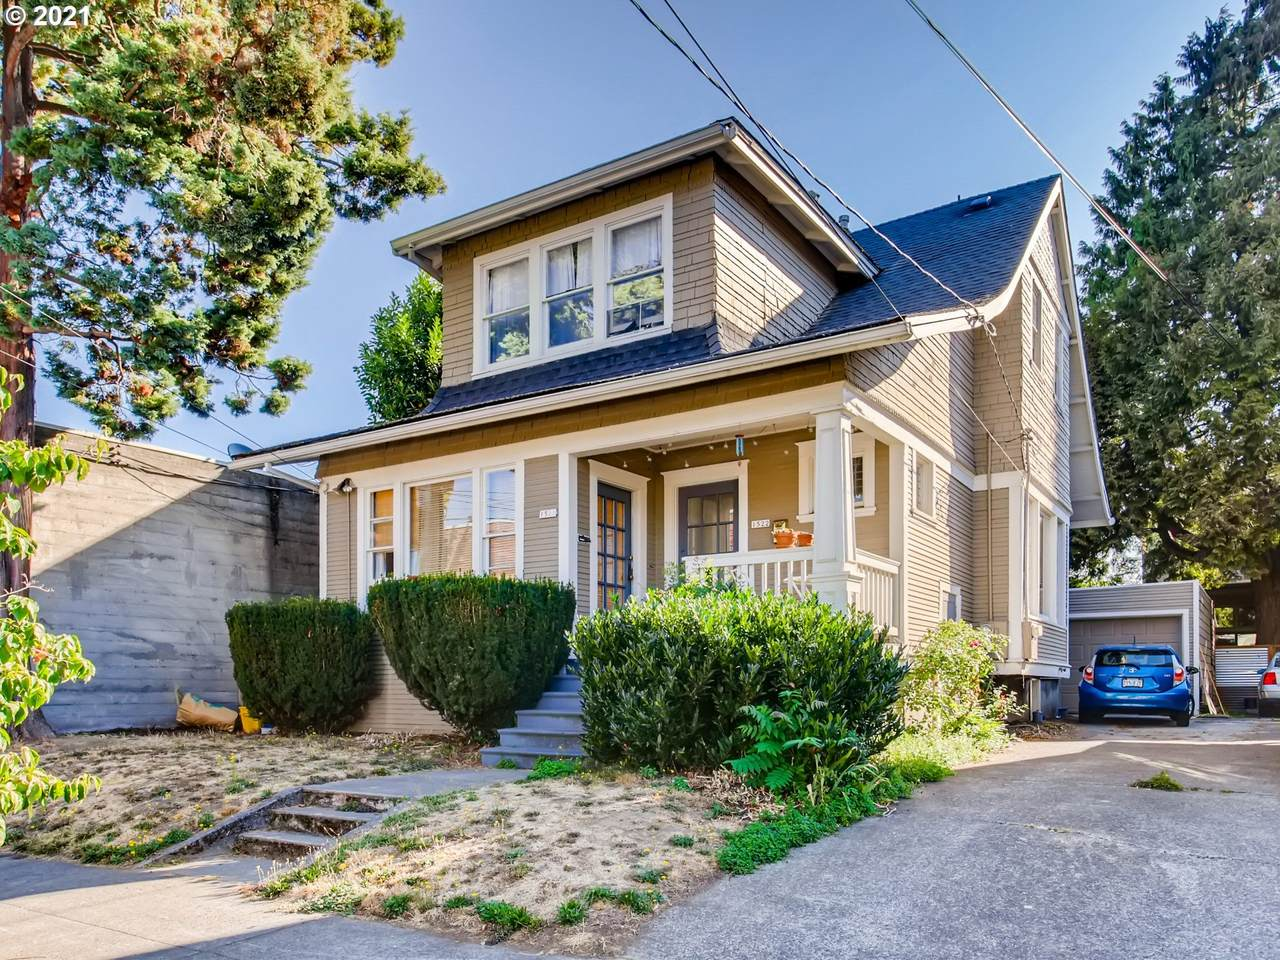 1520 35TH Ave - Photo 1